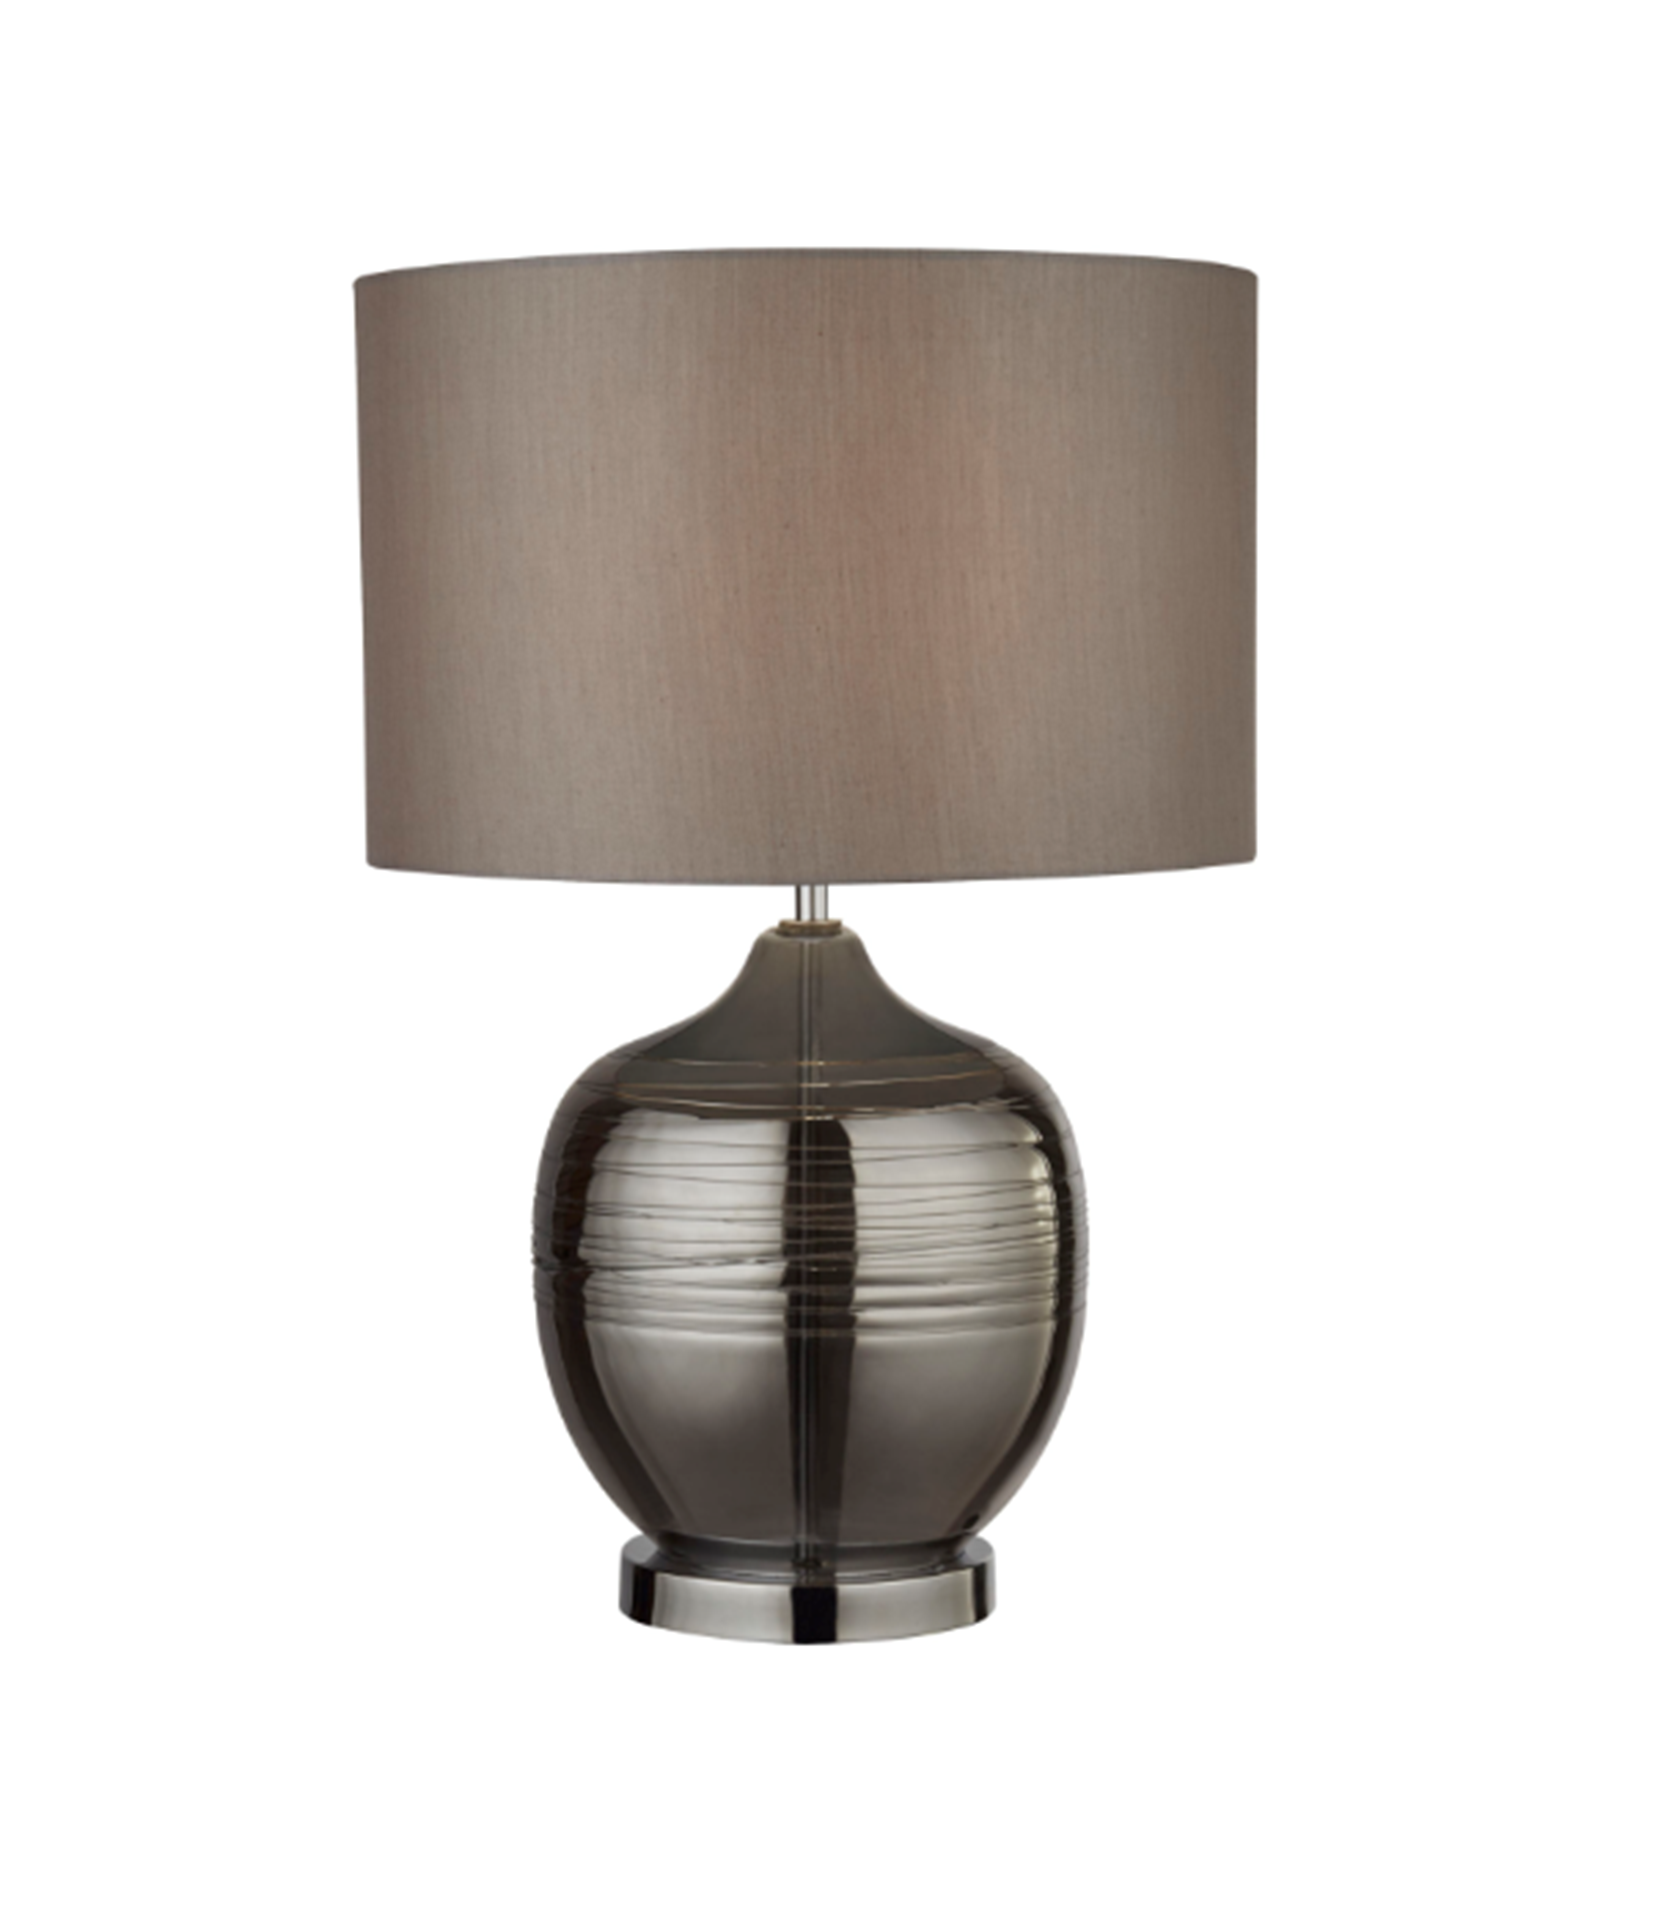 SEARCHLIGHT SMOKED RIDGED DETAIL GLASS TABLE LAMP WITH GREY DRUM SHADE 2837SM